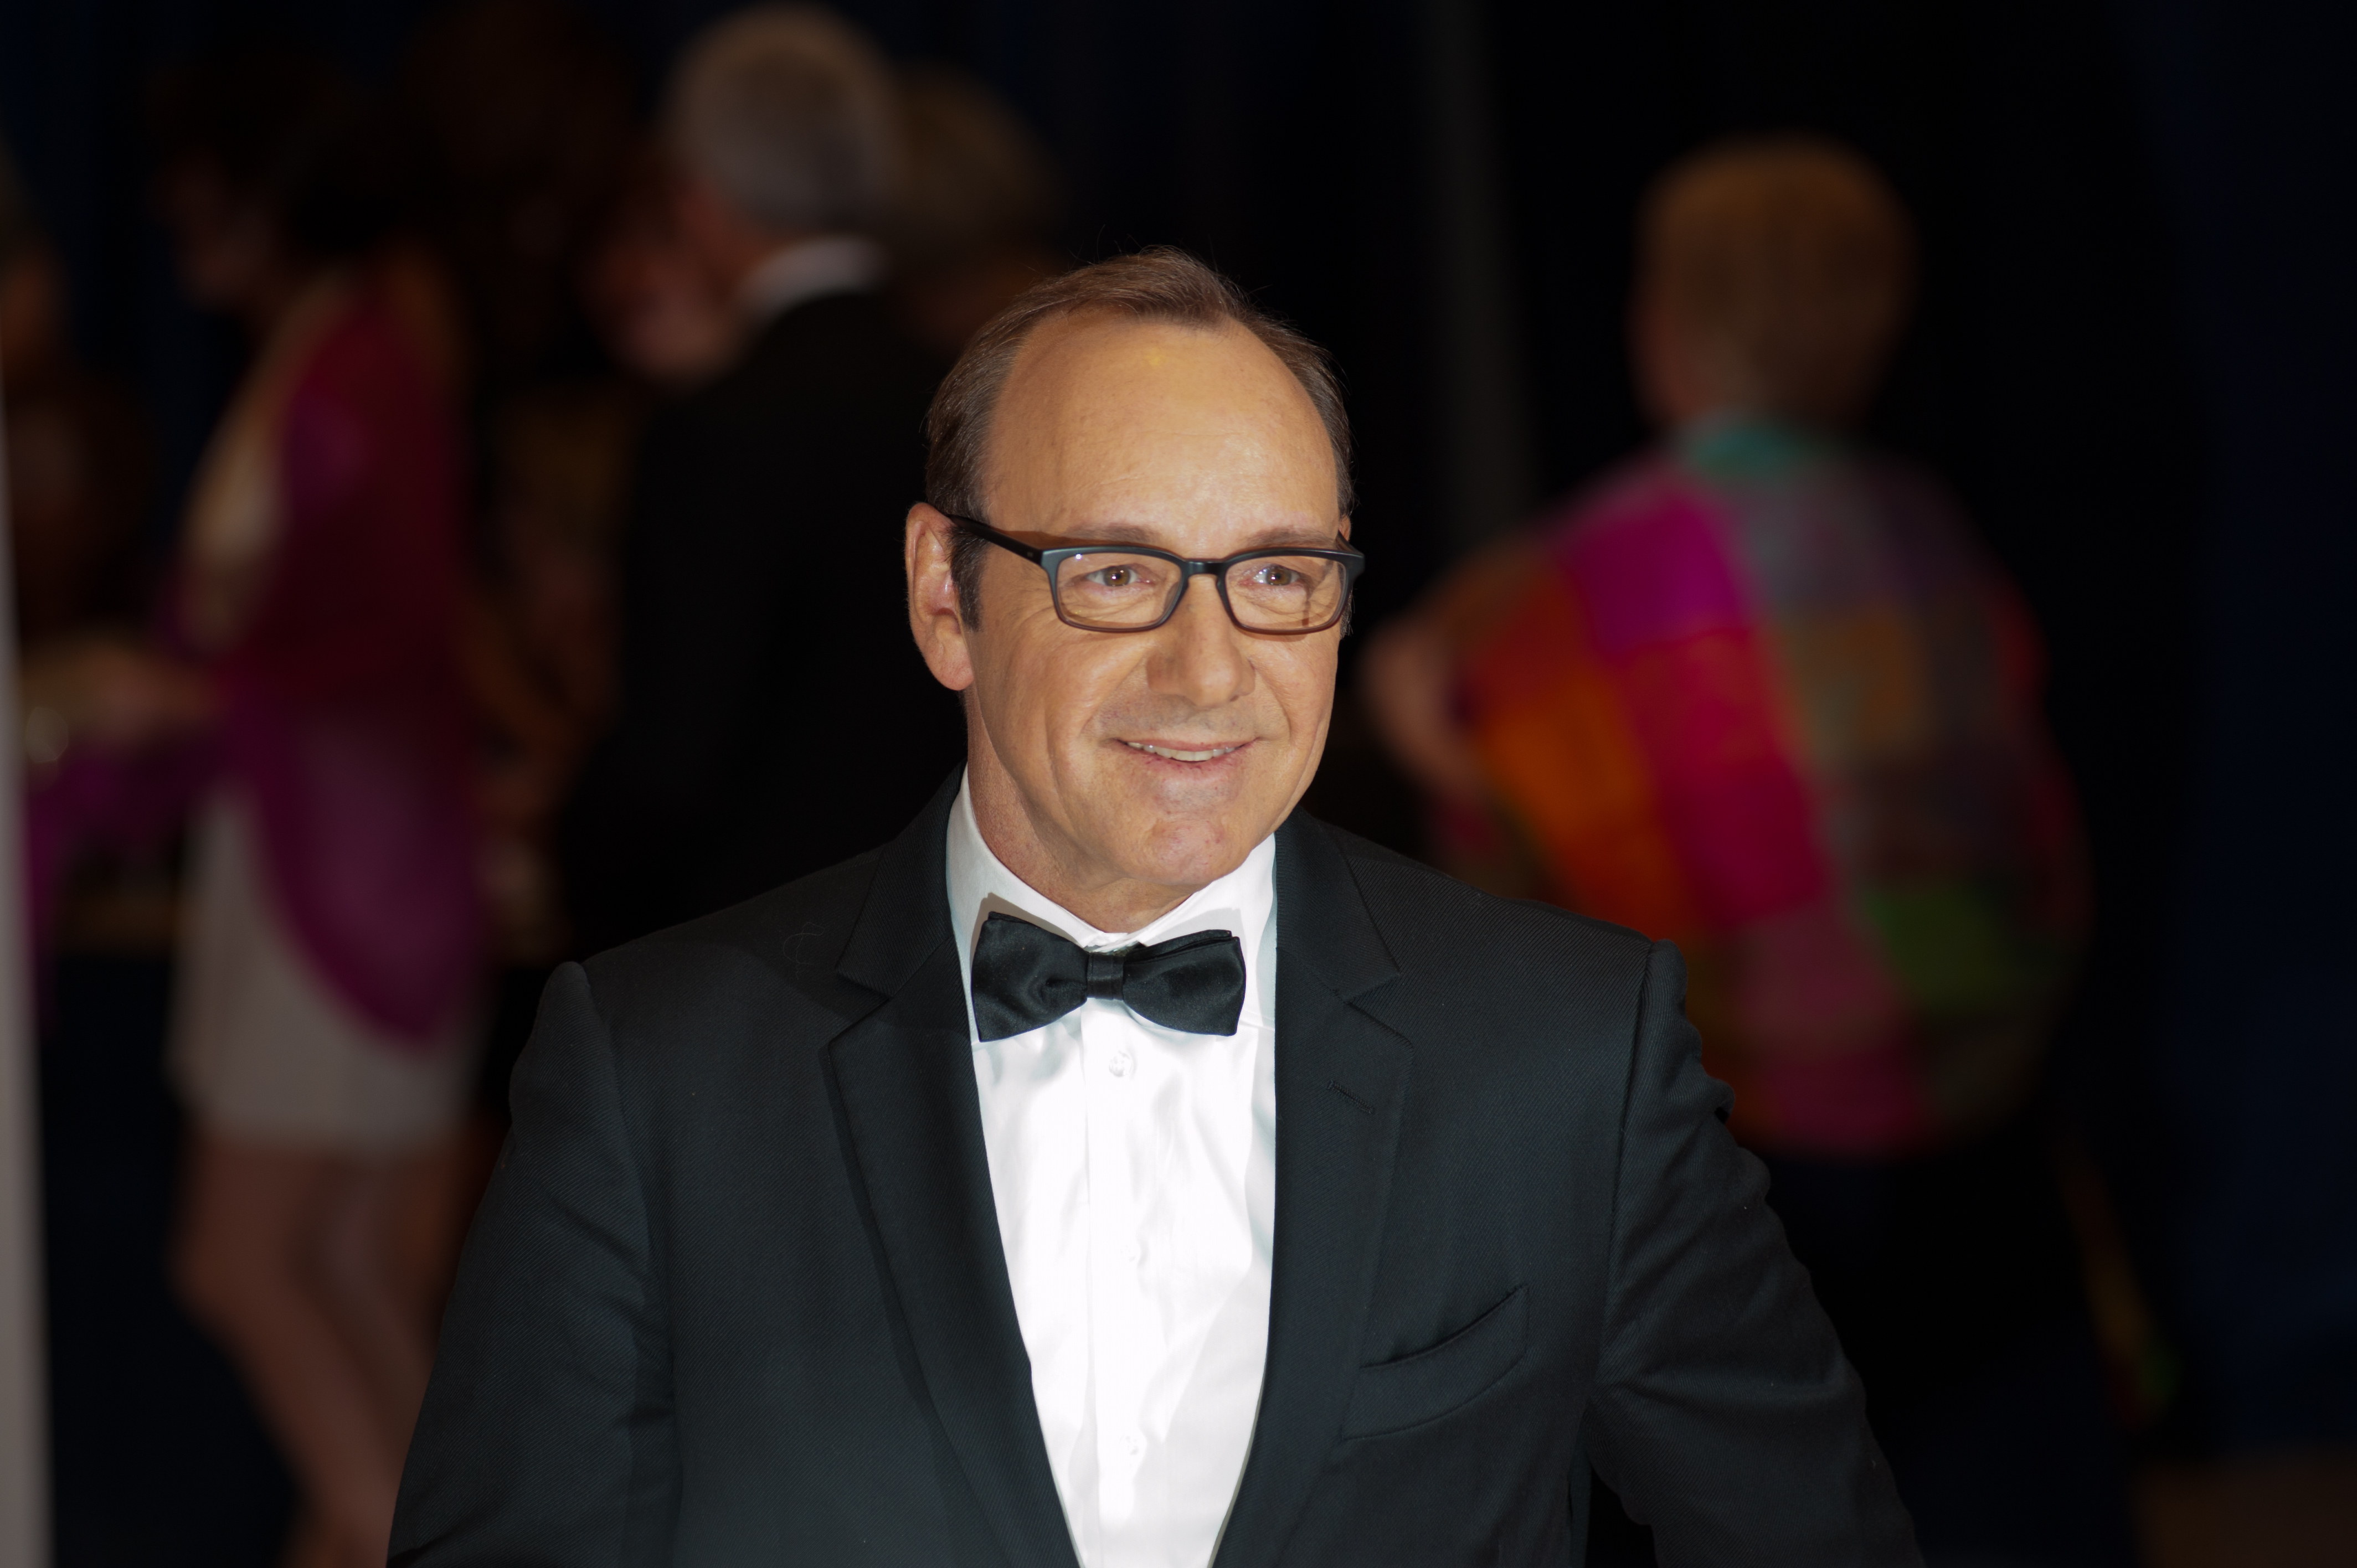 'House of Cards' Star Kevin Spacey's Net Worth on His 56th Birthday